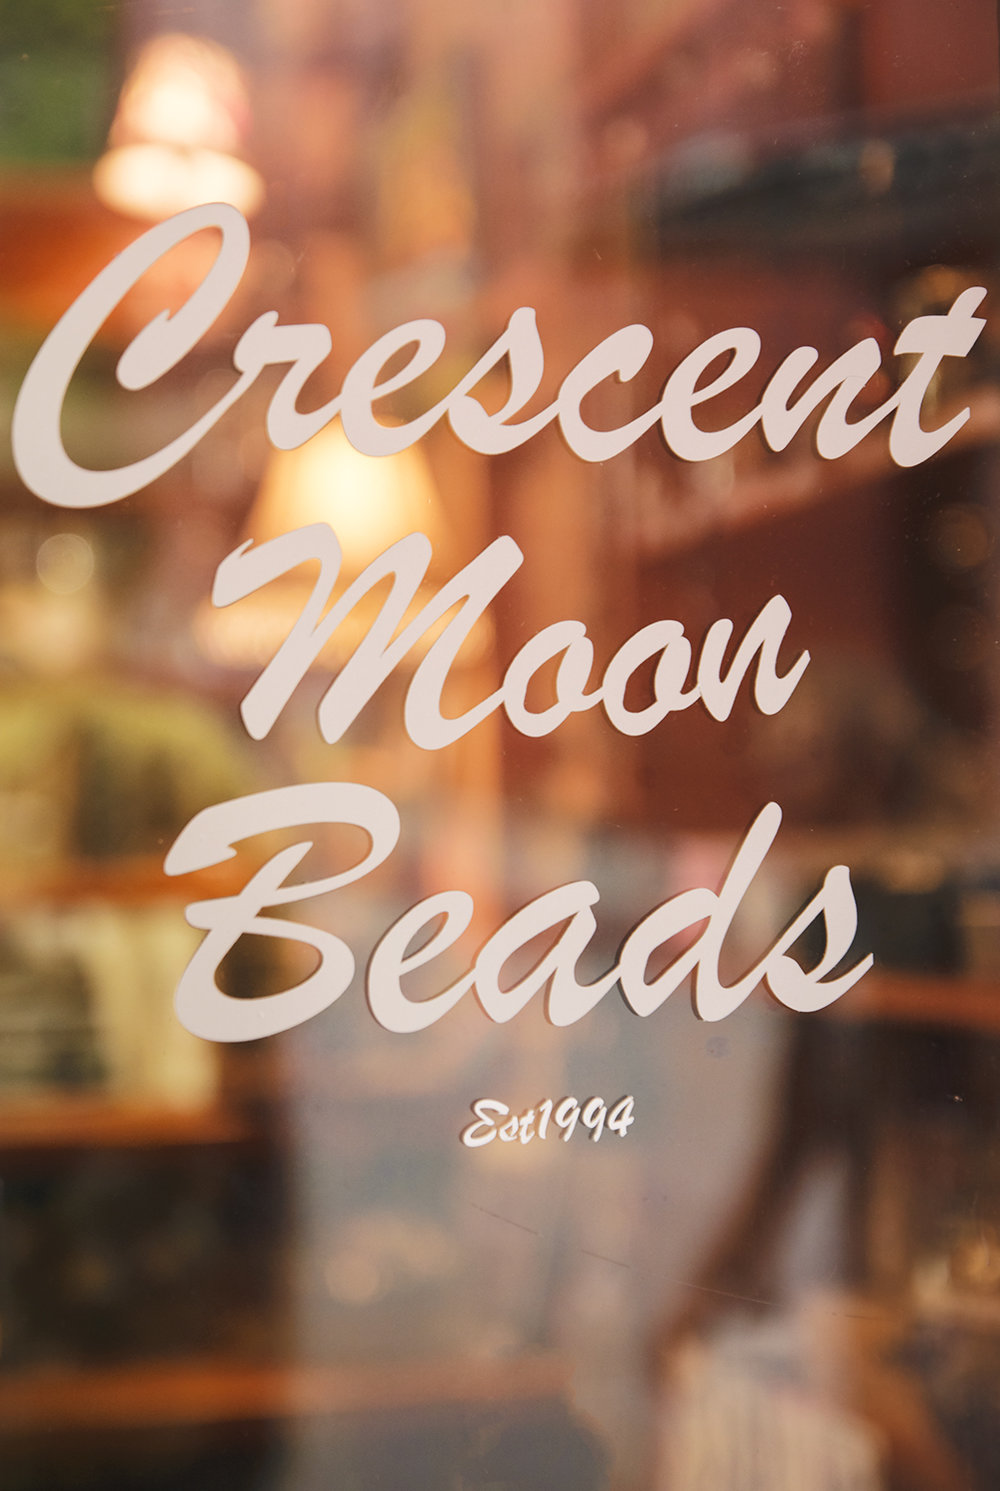 Crescent-Moon-Beads-window-decal-150ppi-6x10.jpg